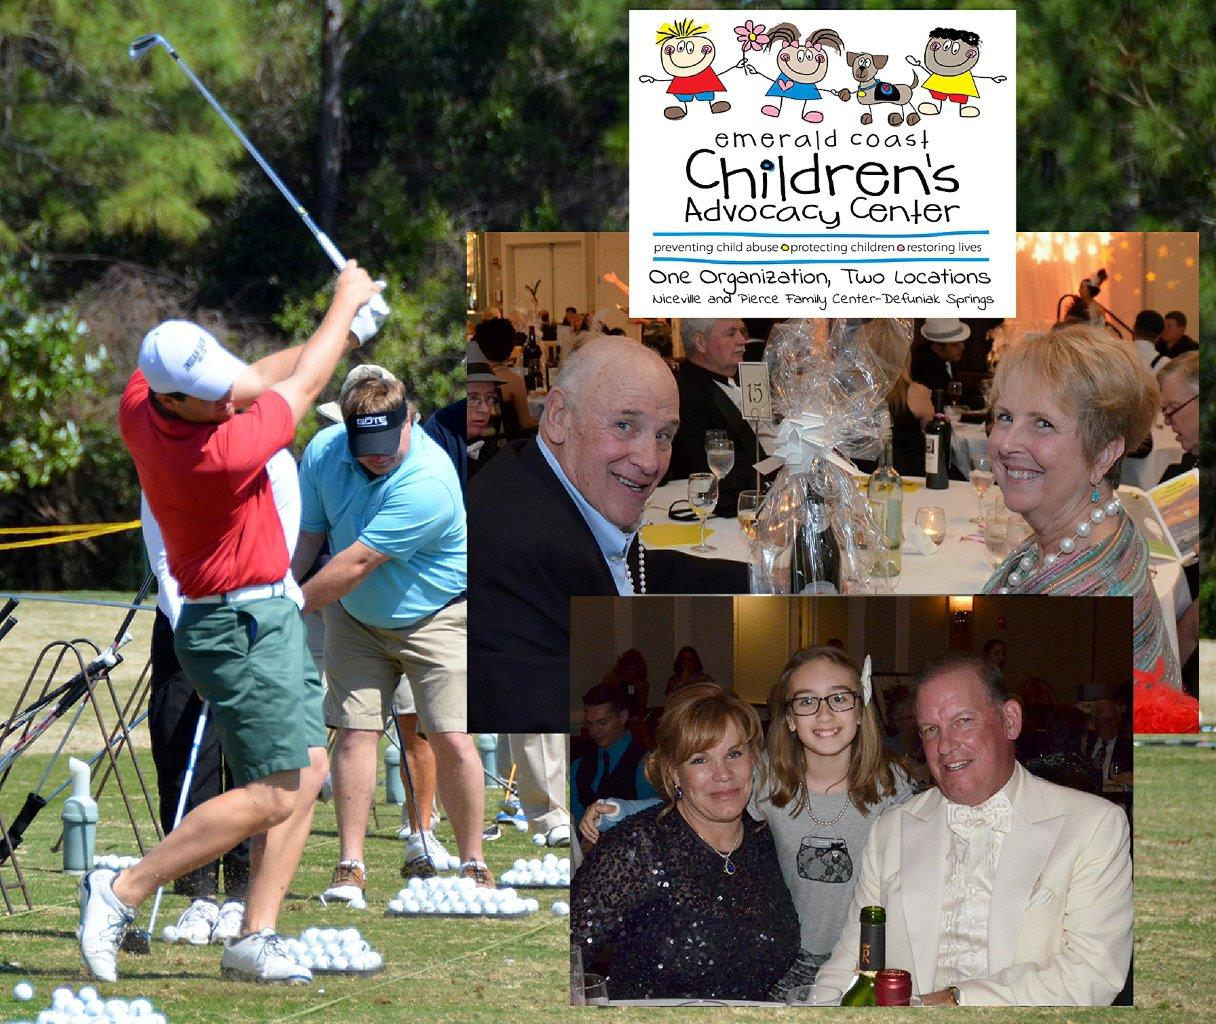 ECCAC's 20th Annual Kieran May Memorial Gala & Golf weekend will be on March 9 at the Hilton Sandestin for the Gala and March 10 for the golf tournament at Kelly Plantation.